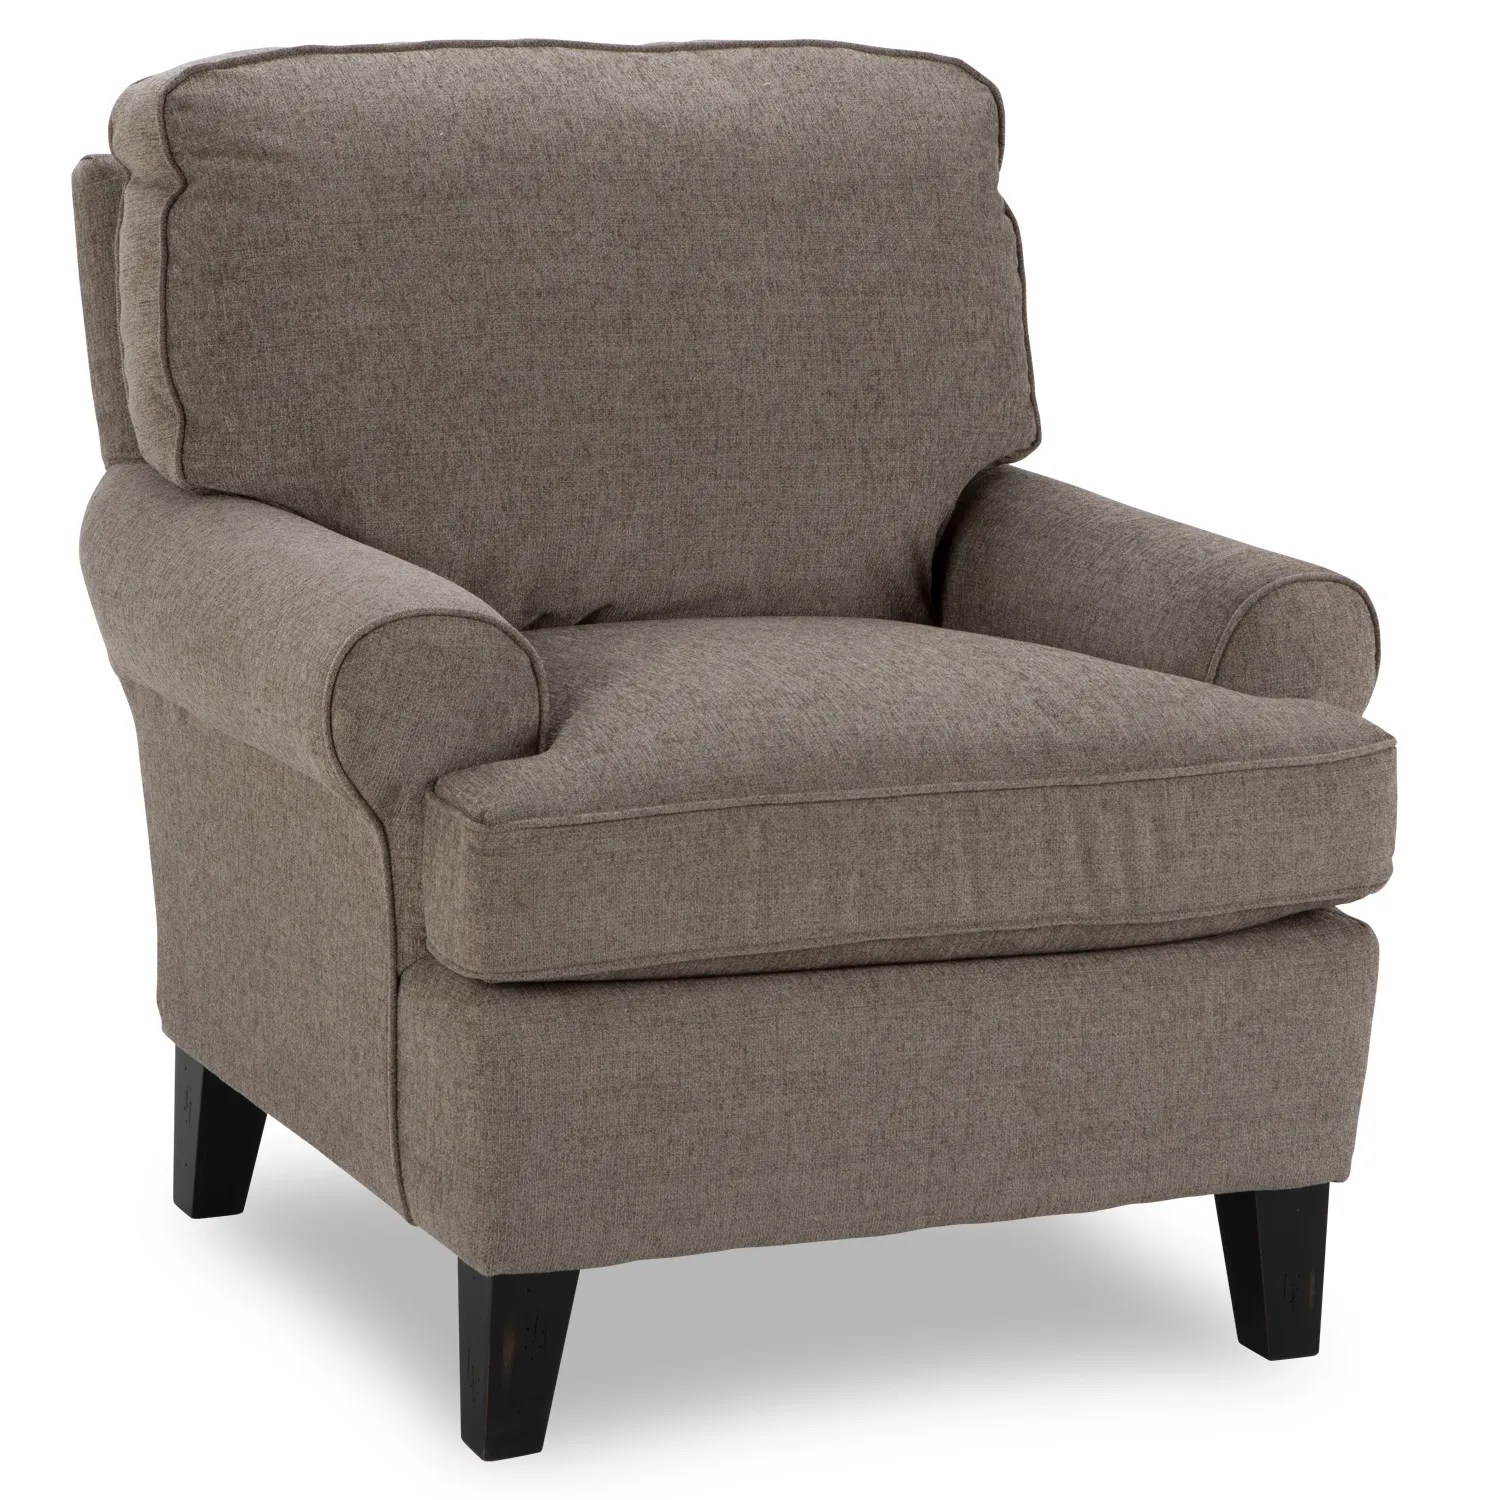 Accent Chairs Sale Maci Accent Chair Chairs Sale Wg Andr Furniture